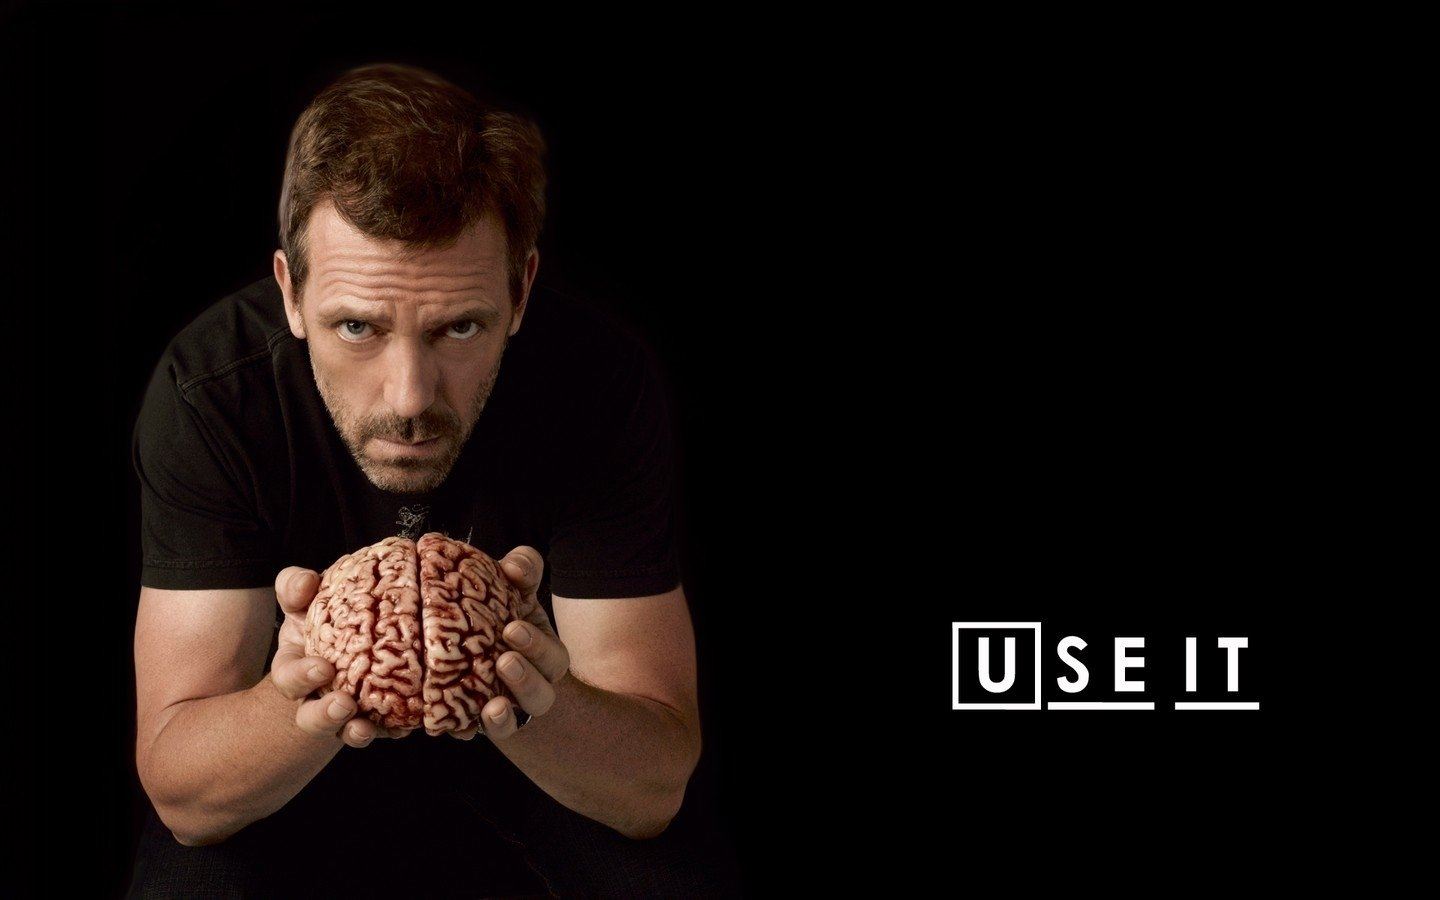 Dr House Says Use Your Brain Fondo De Pantalla And Fondo